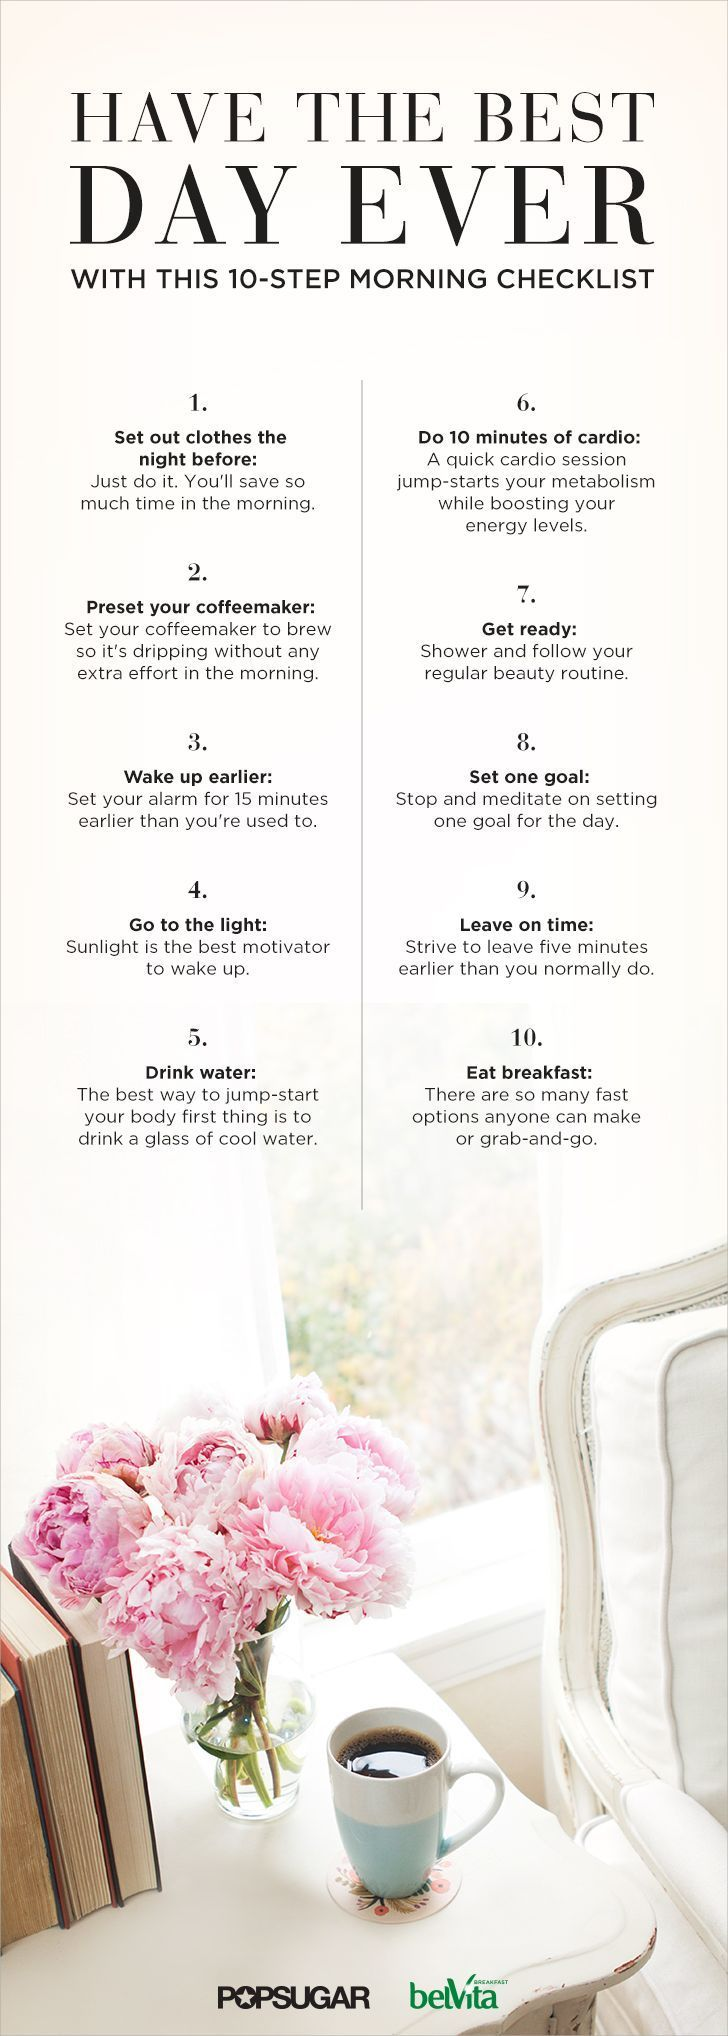 Have the Best Day Ever With This 10-Step Morning Checklist